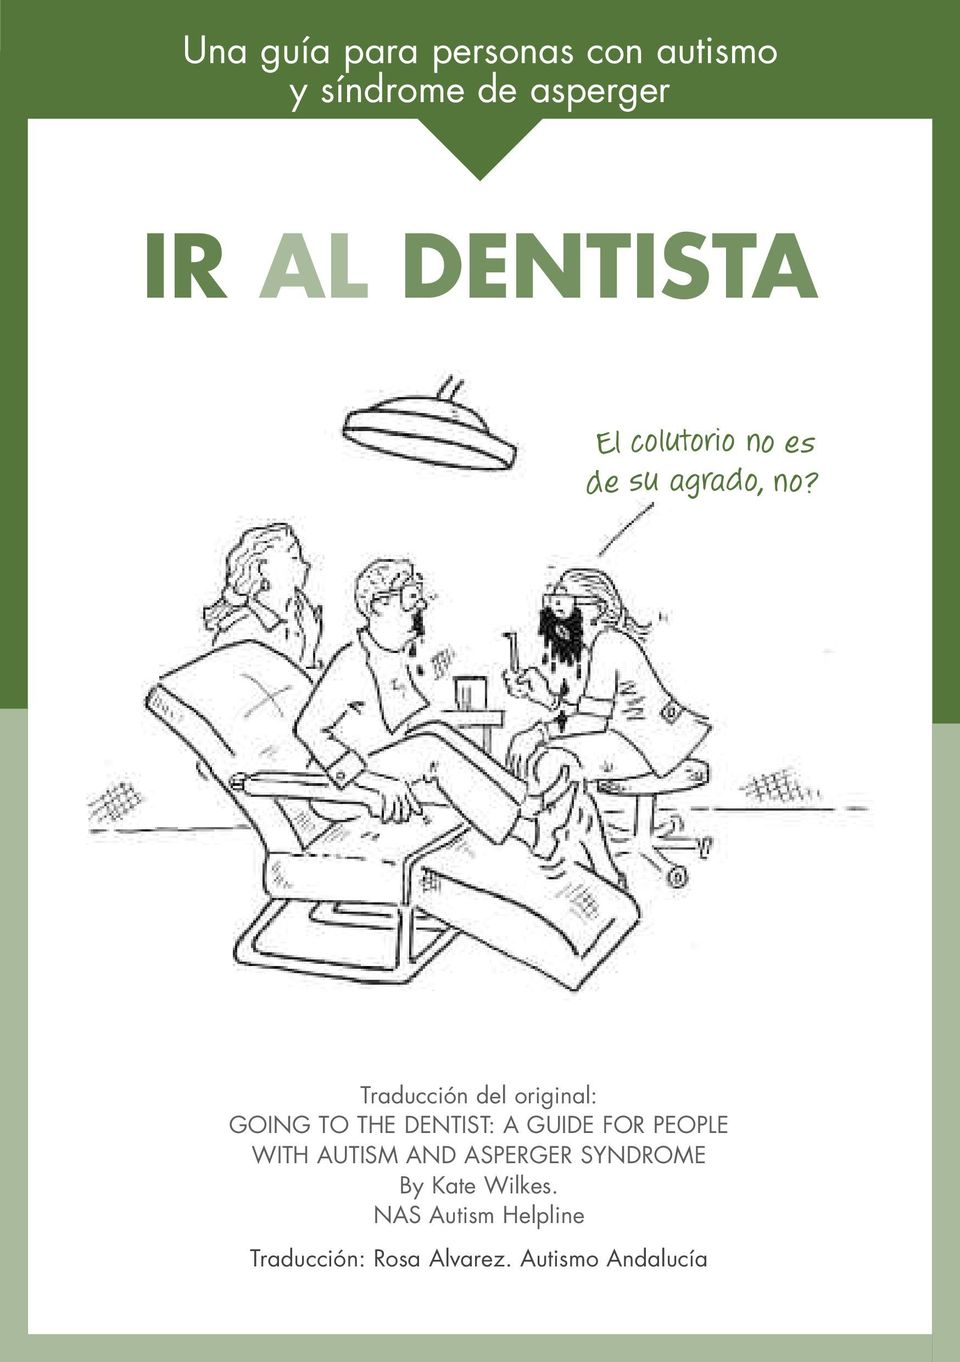 Traducción del original: GOING TO THE DENTIST: A GUIDE FOR PEOPLE WITH